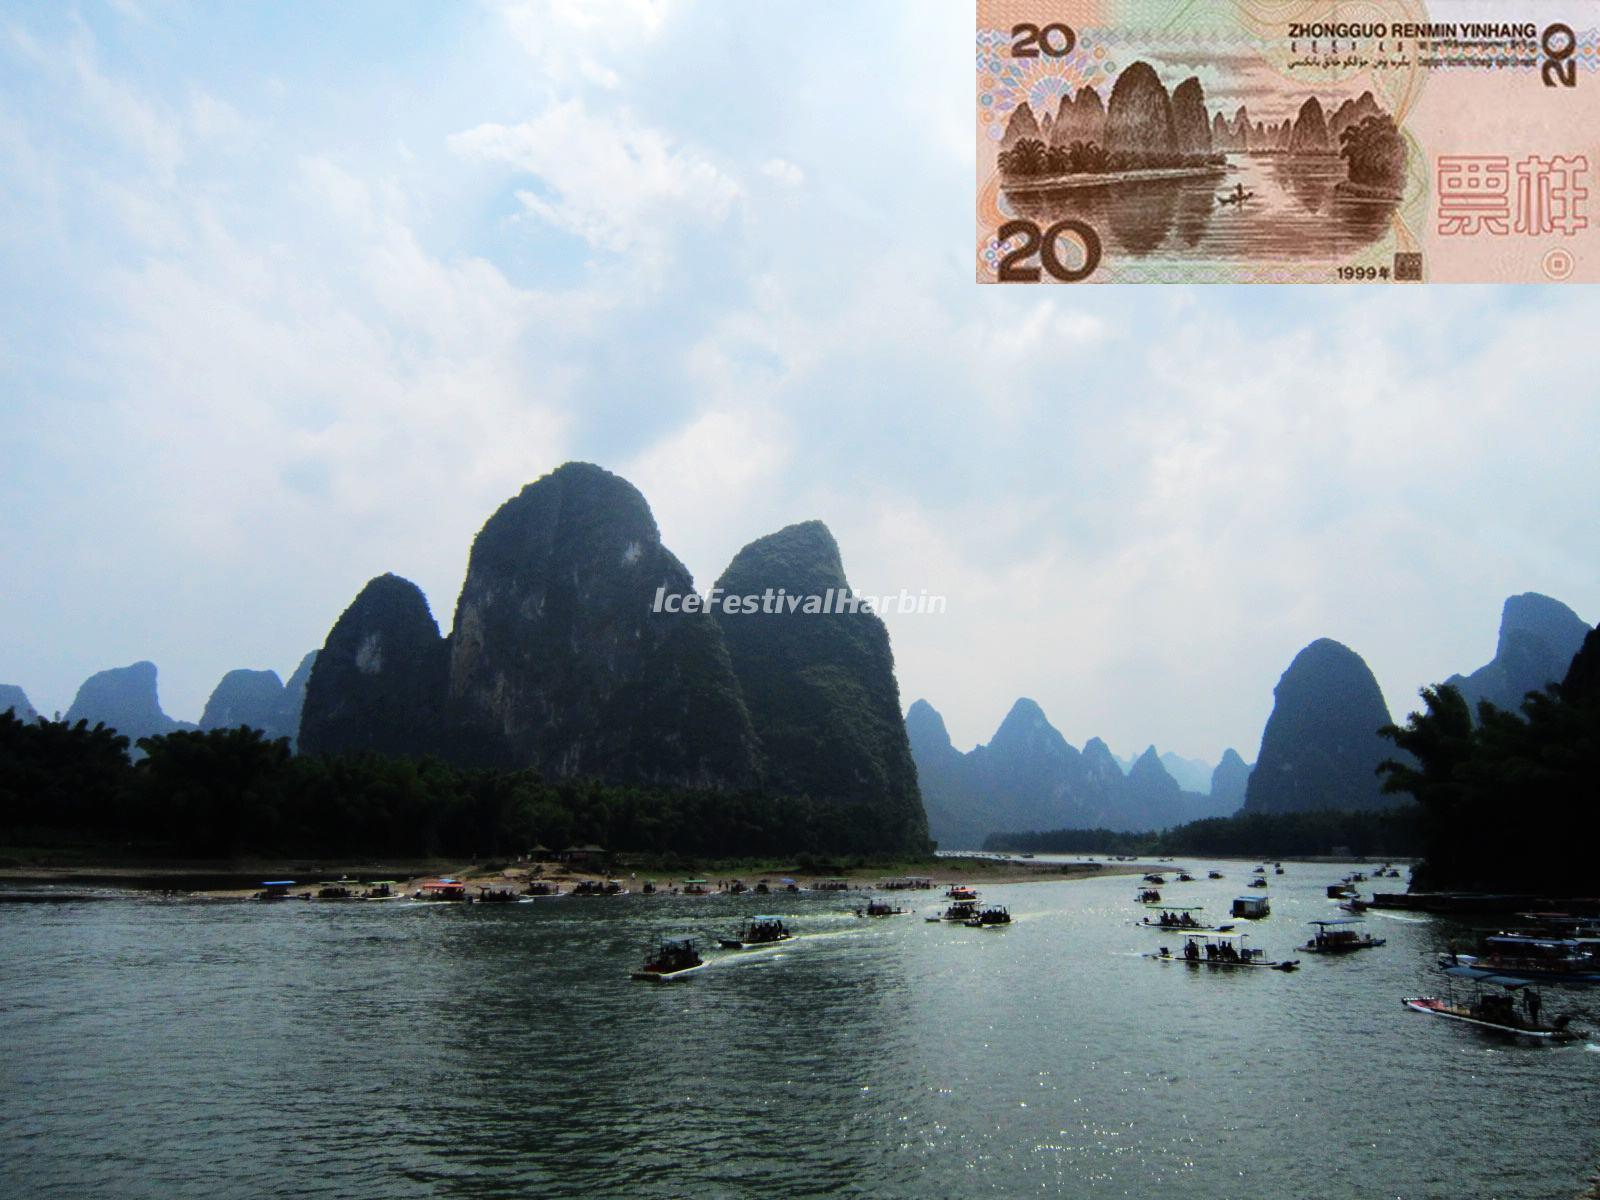 The Background of RMB 20yuan is Li River